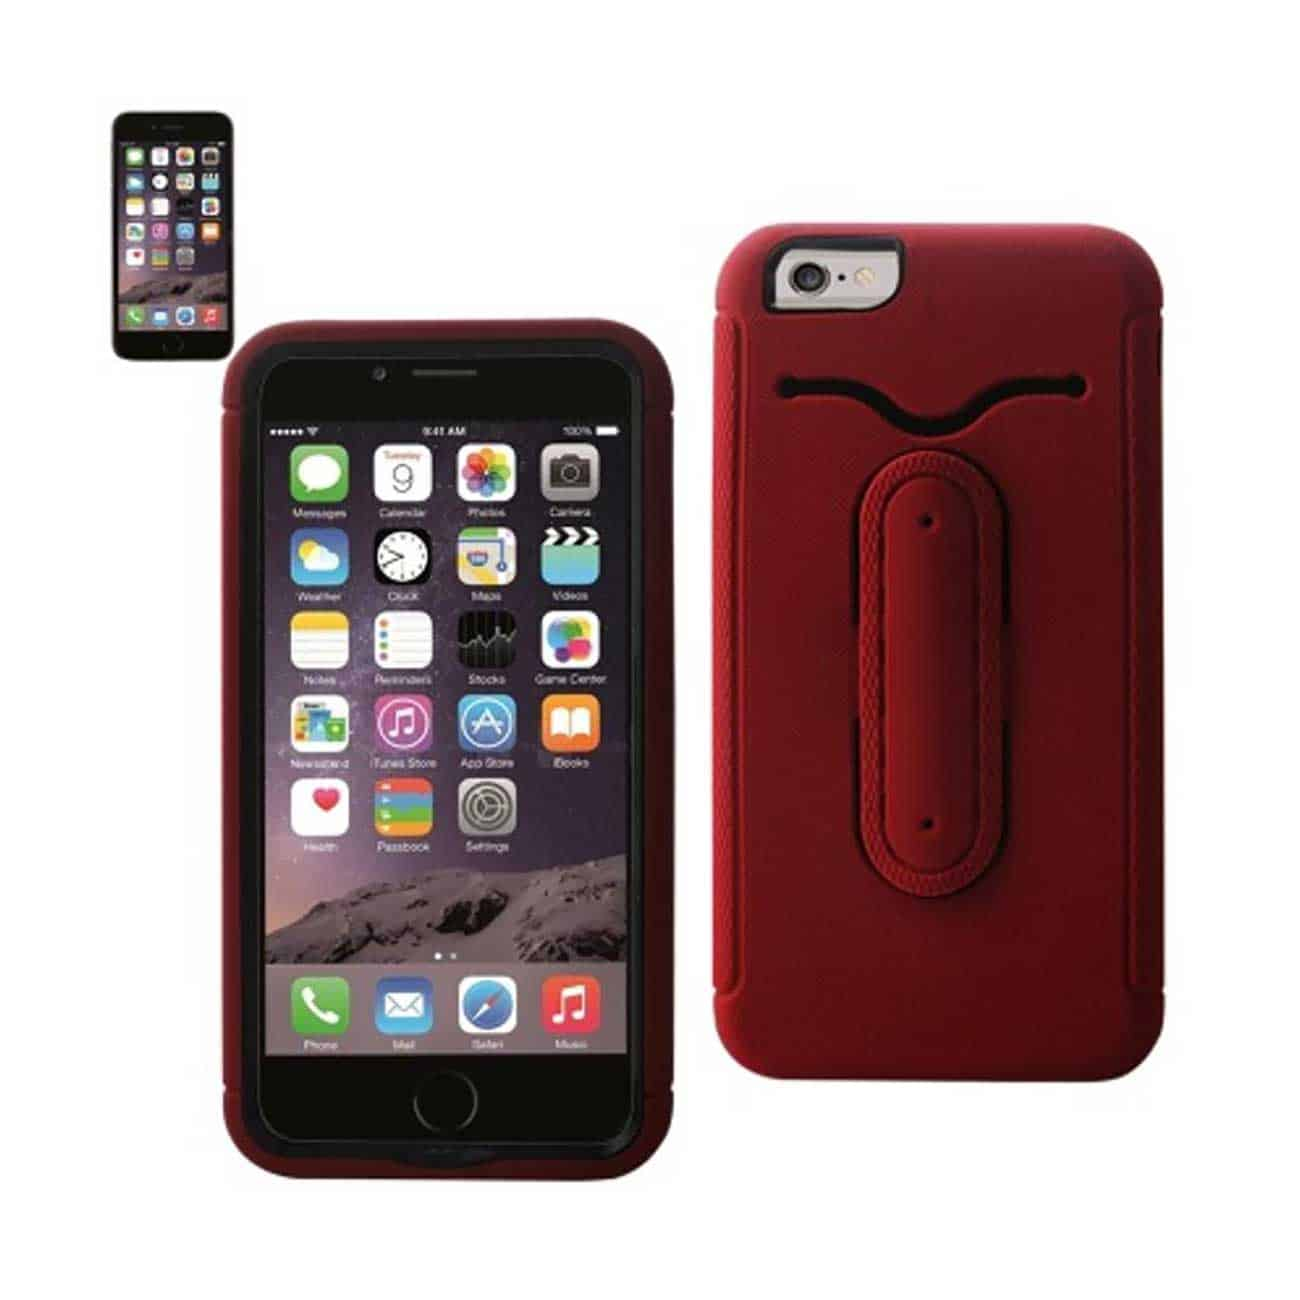 IPHONE 6 PLUS HYBRID HEAVY DUTY CASE WITH BENDING KICKSTAND IN RED